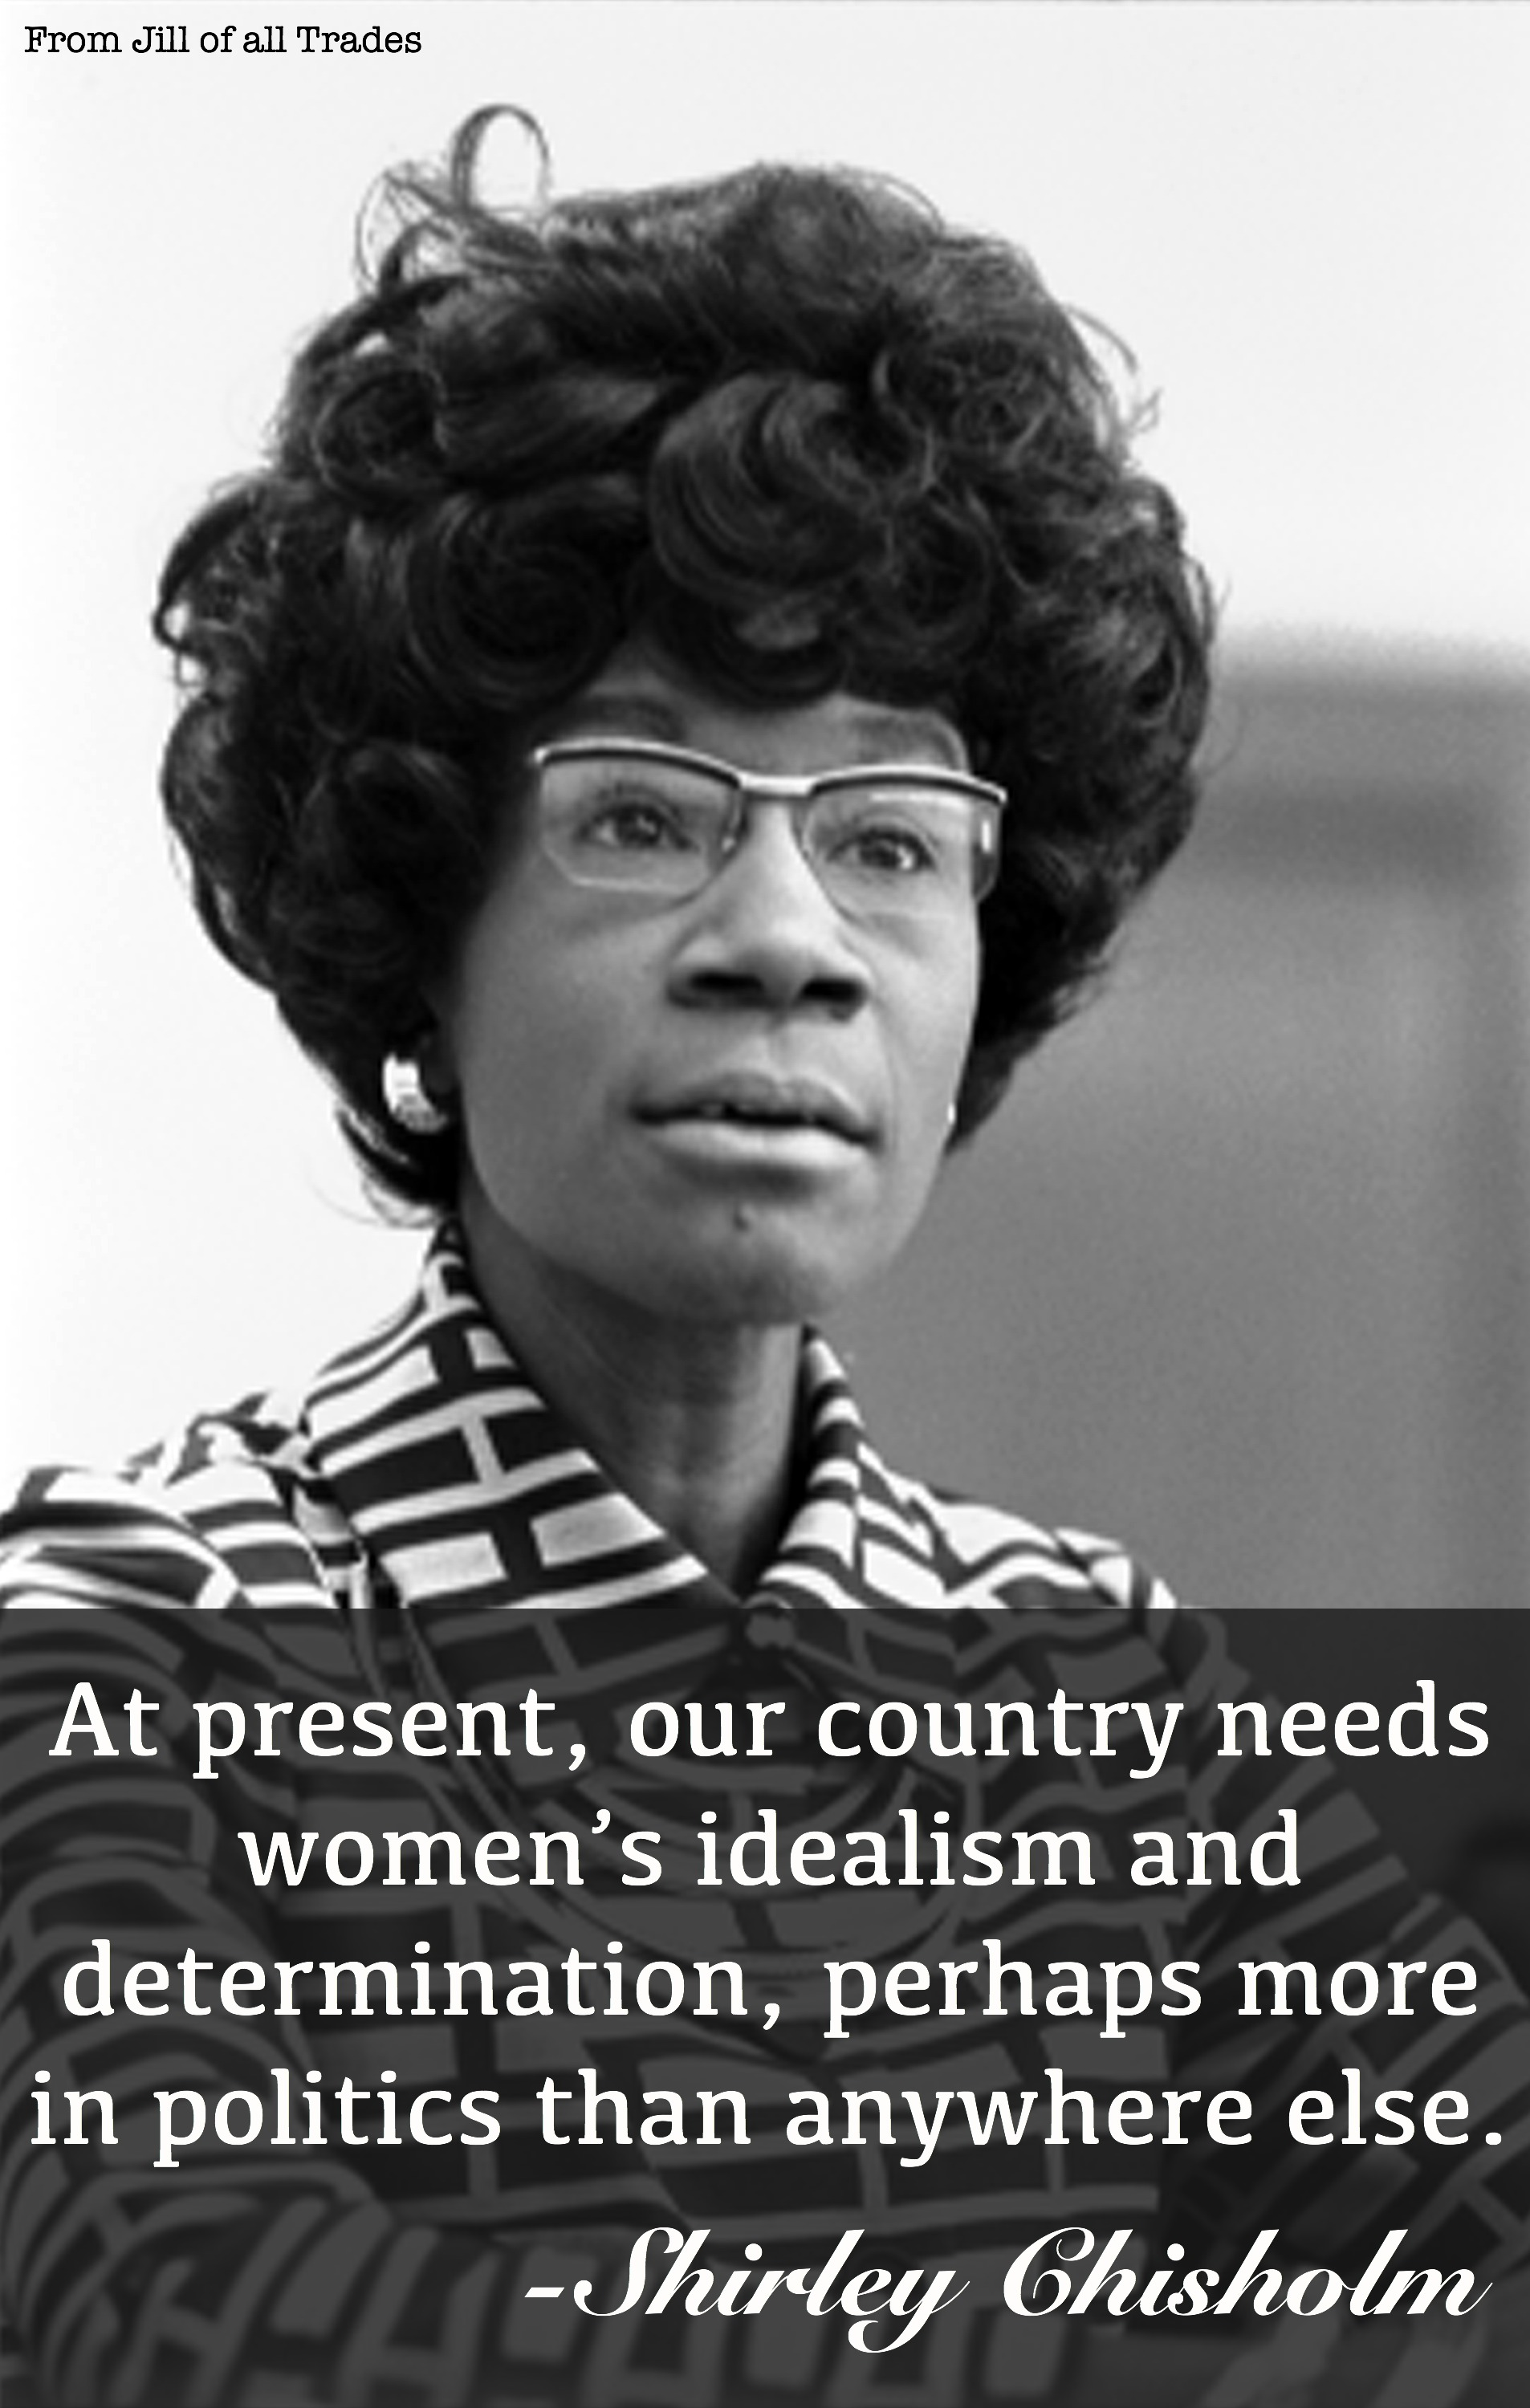 the life of shirley chisholm Shirley chisholm made history as the first black female us representative, elected in 1968 by the voters of new york's 12th congressional.